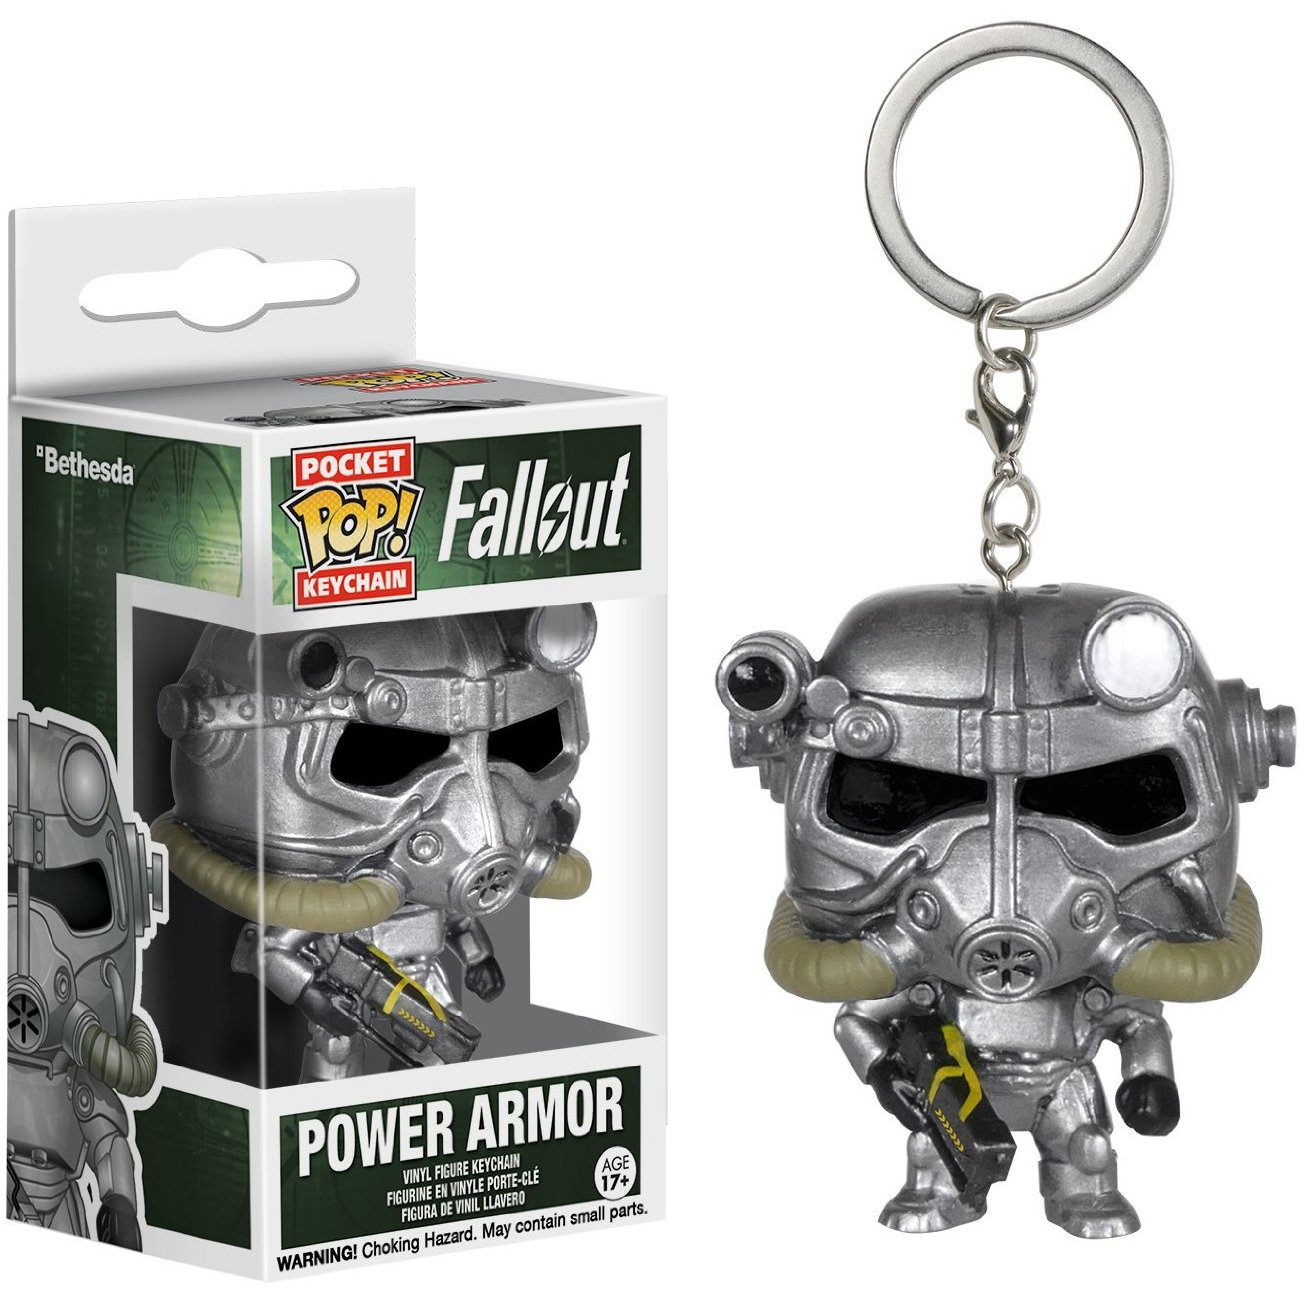 Amazon.com: Fallout Power Armor: Pocket POP! x Mini-Figure ...